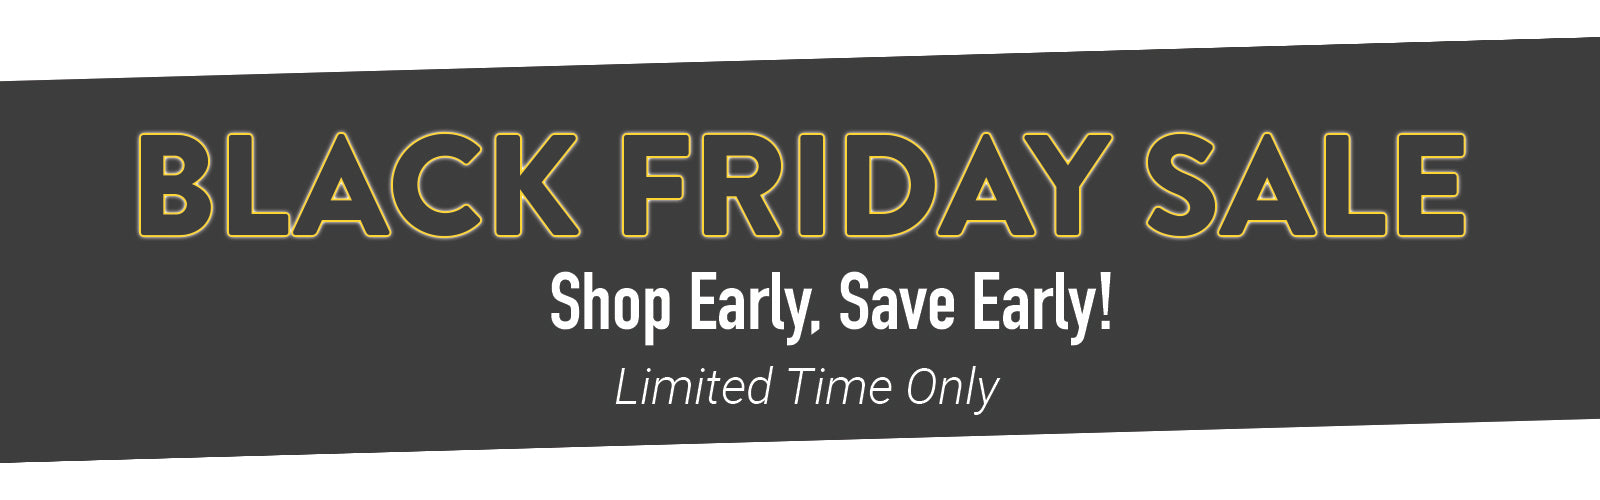 Black Friday Sale at Yellow Mountain Imports: Up to 25% Off on Various Items